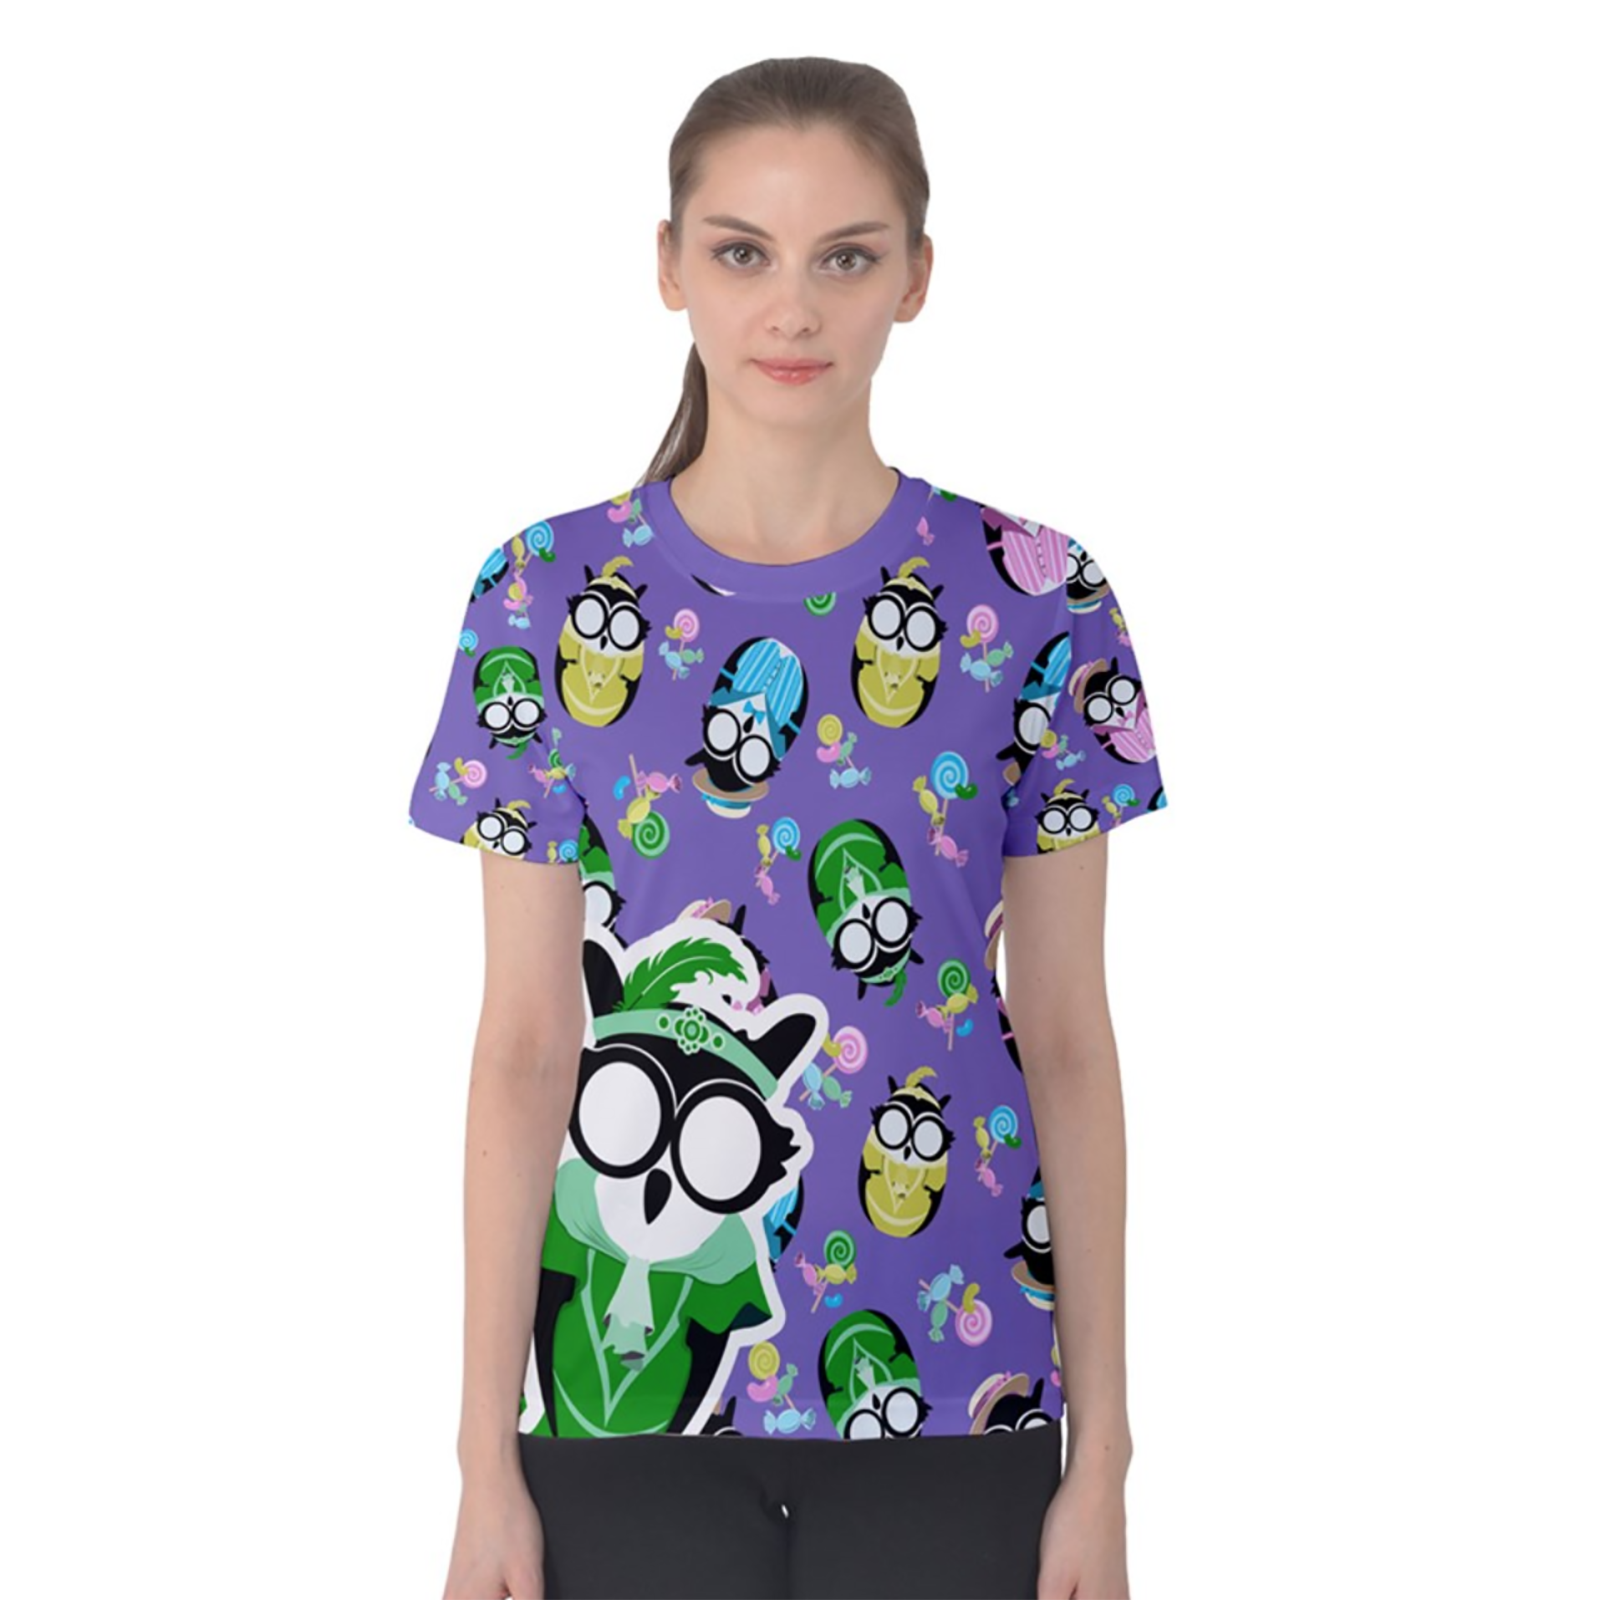 Easter Egg Women's Cotton Tee (Patterned)